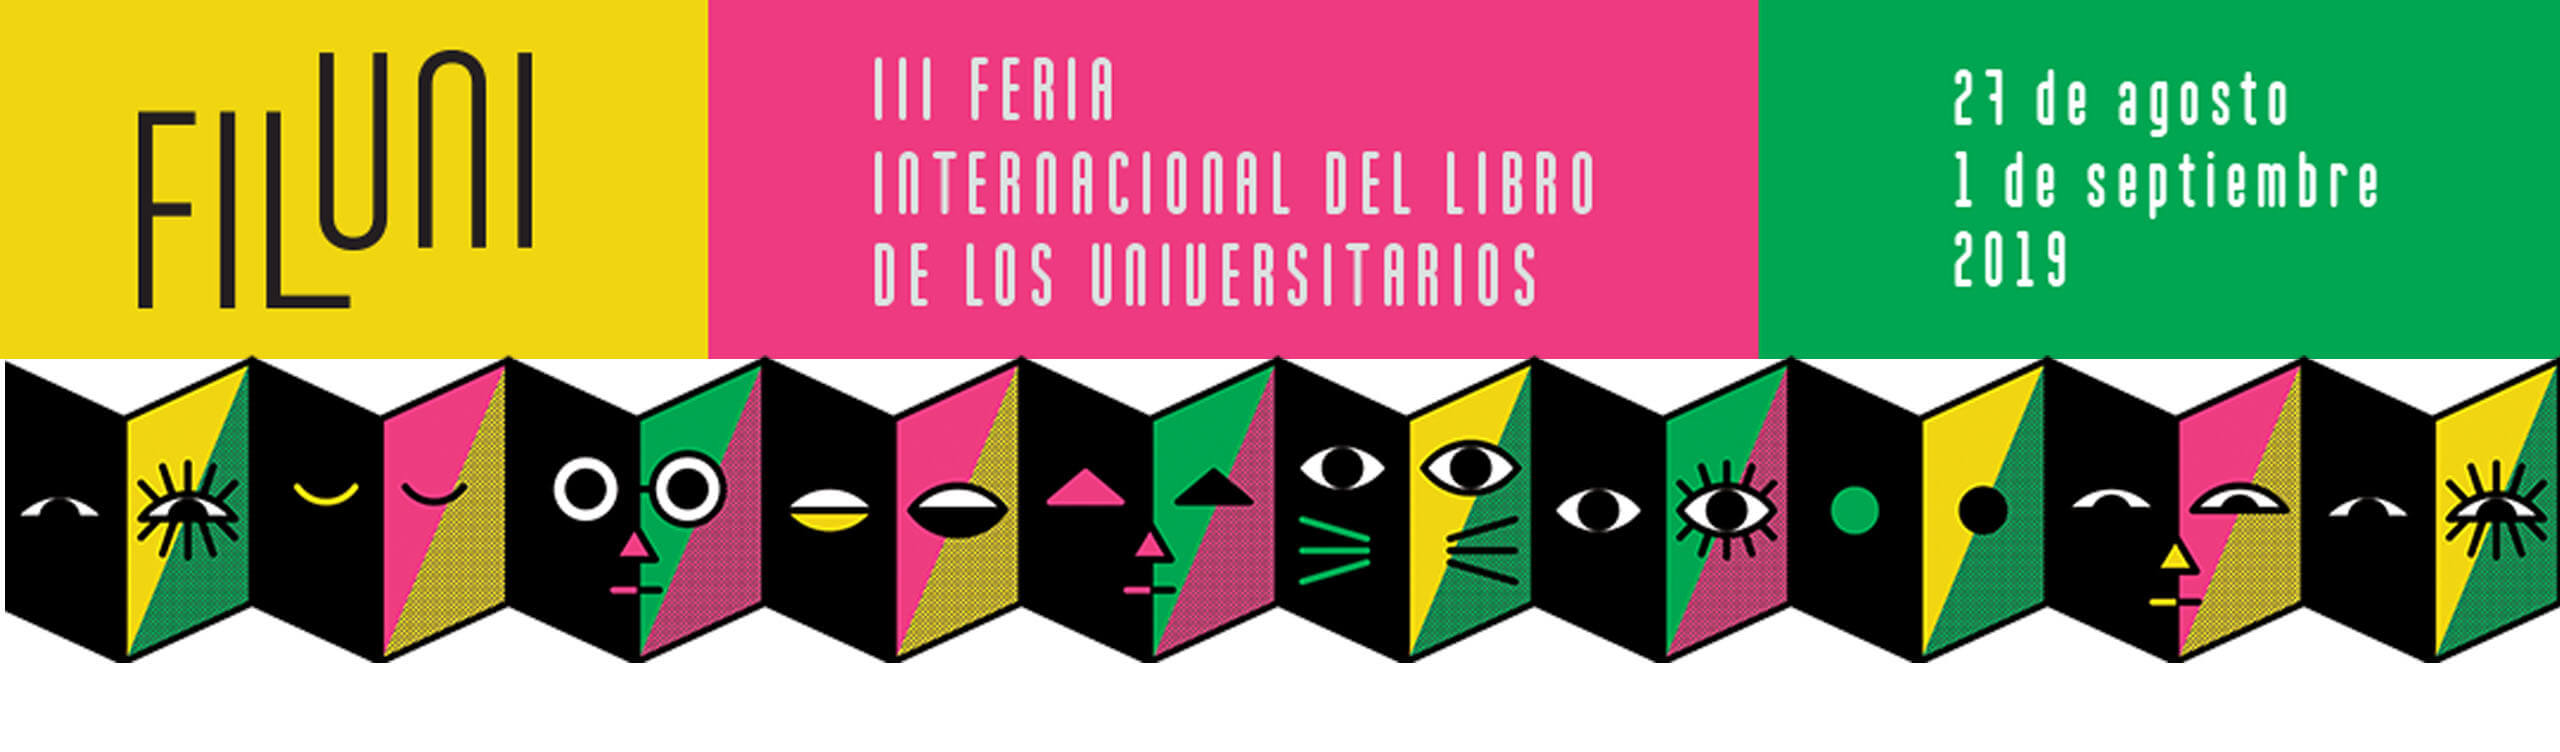 Editorial Universitaria será parte de la FILUNI 2019